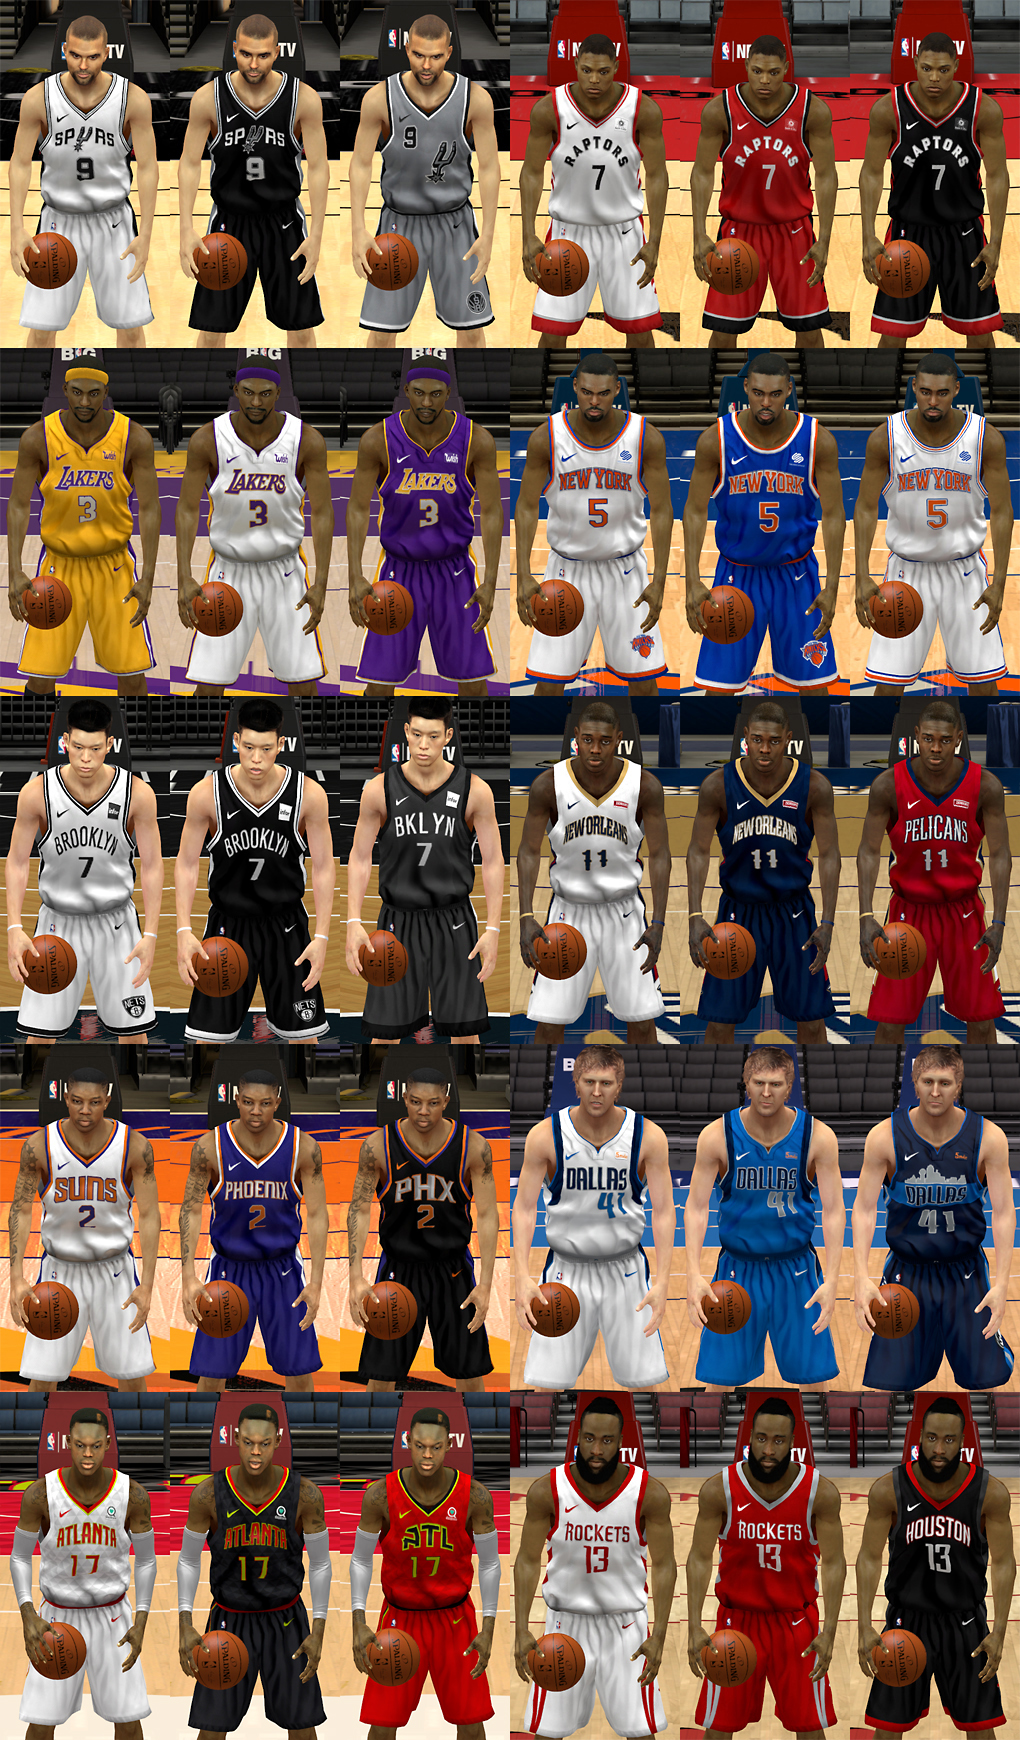 NLSC Forum • Downloads - NBA Nike Uniforms Part 2 a4186c01e